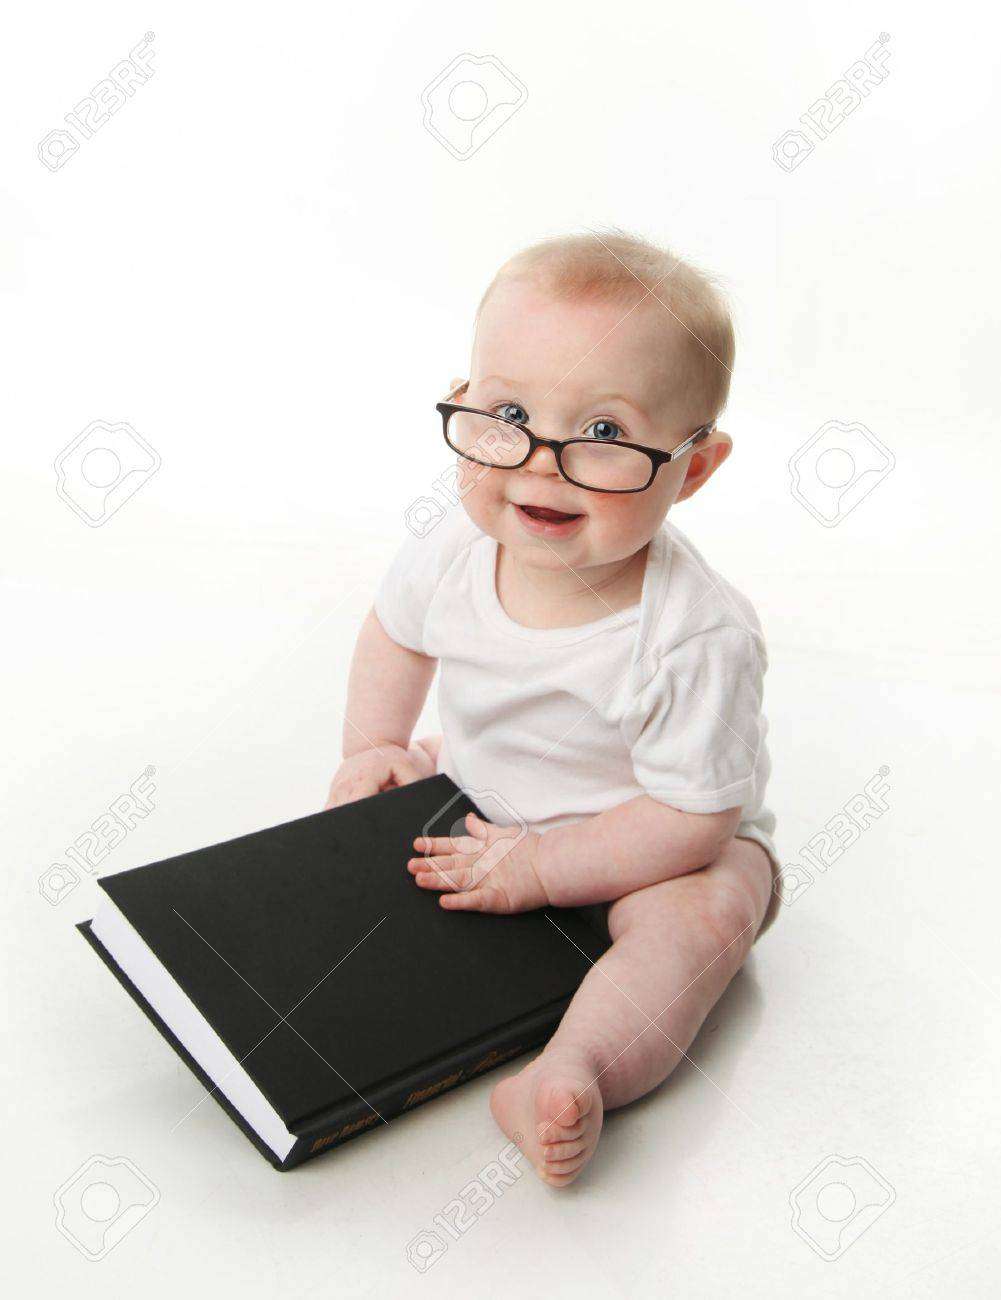 Portrait of an adorable baby sitting up wearing eyeglasses and looking at a book, isolated on white - 9939636